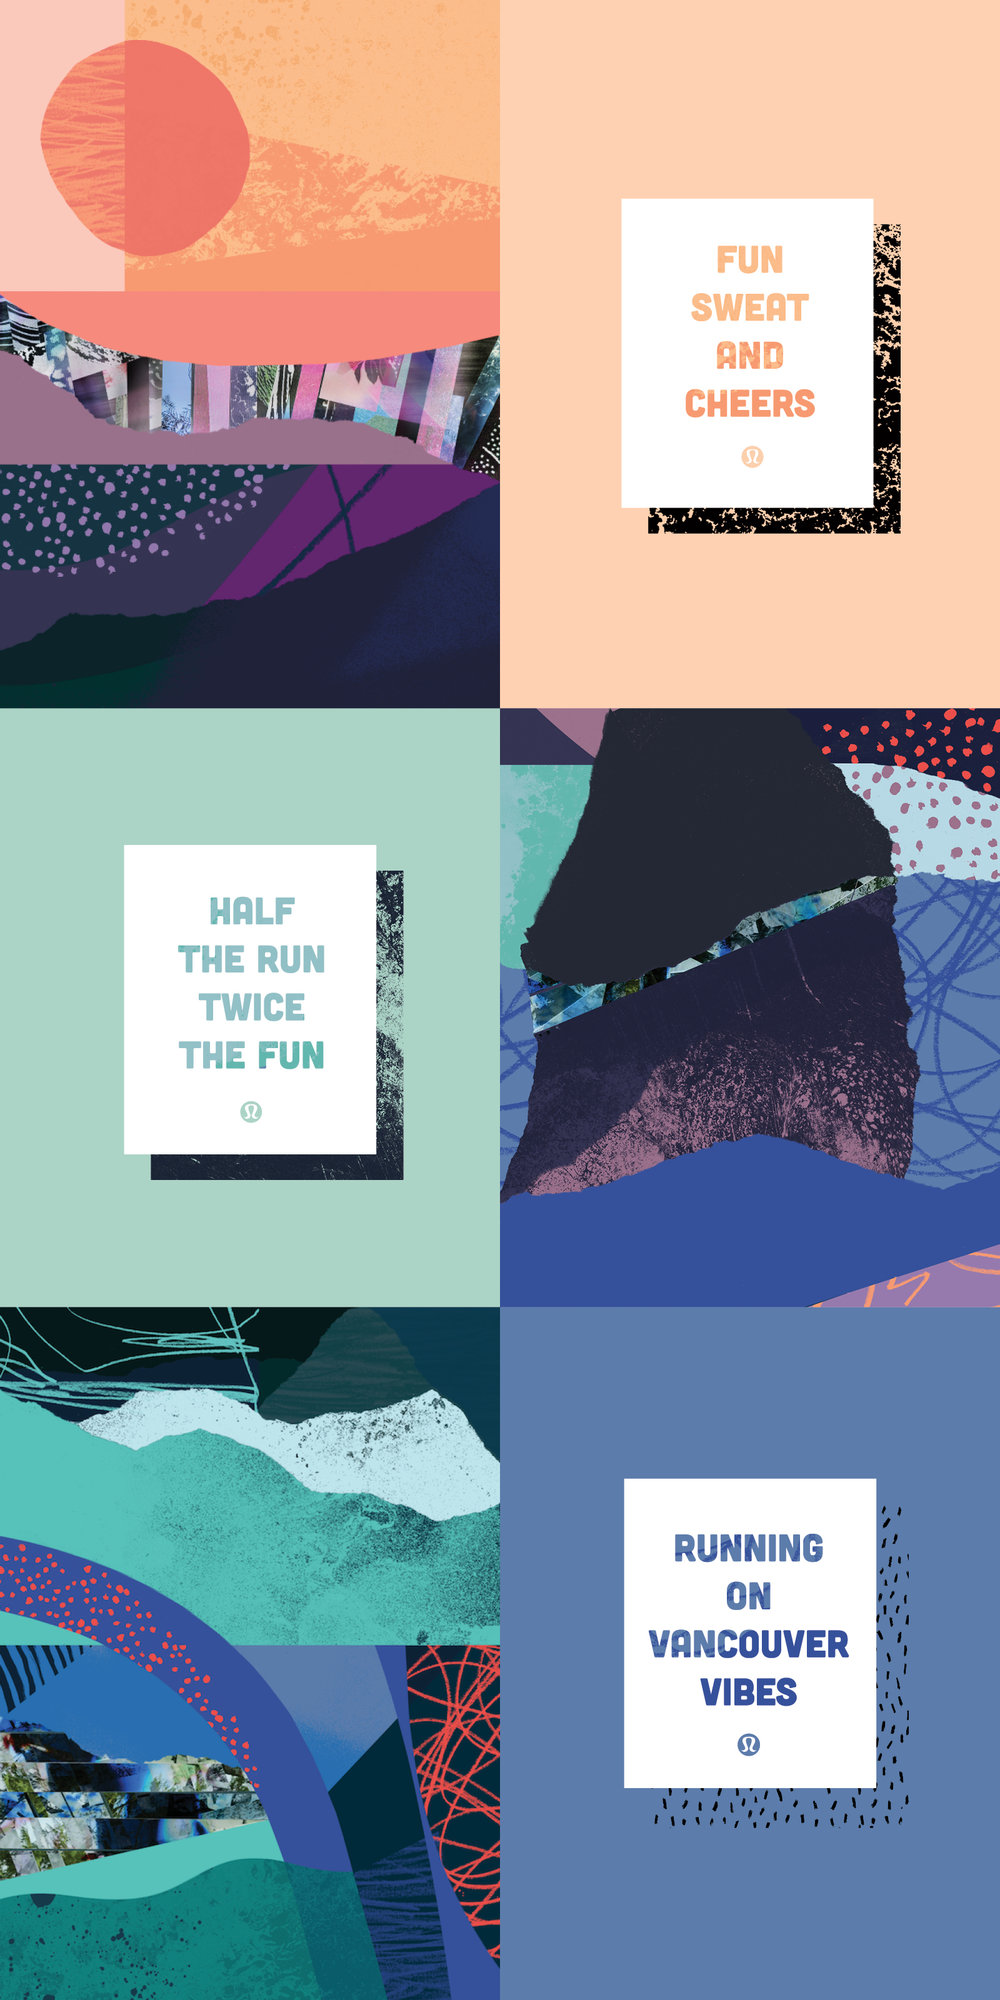 Mood board showcasing illustration, typography, colour palette, and copywriting working together.